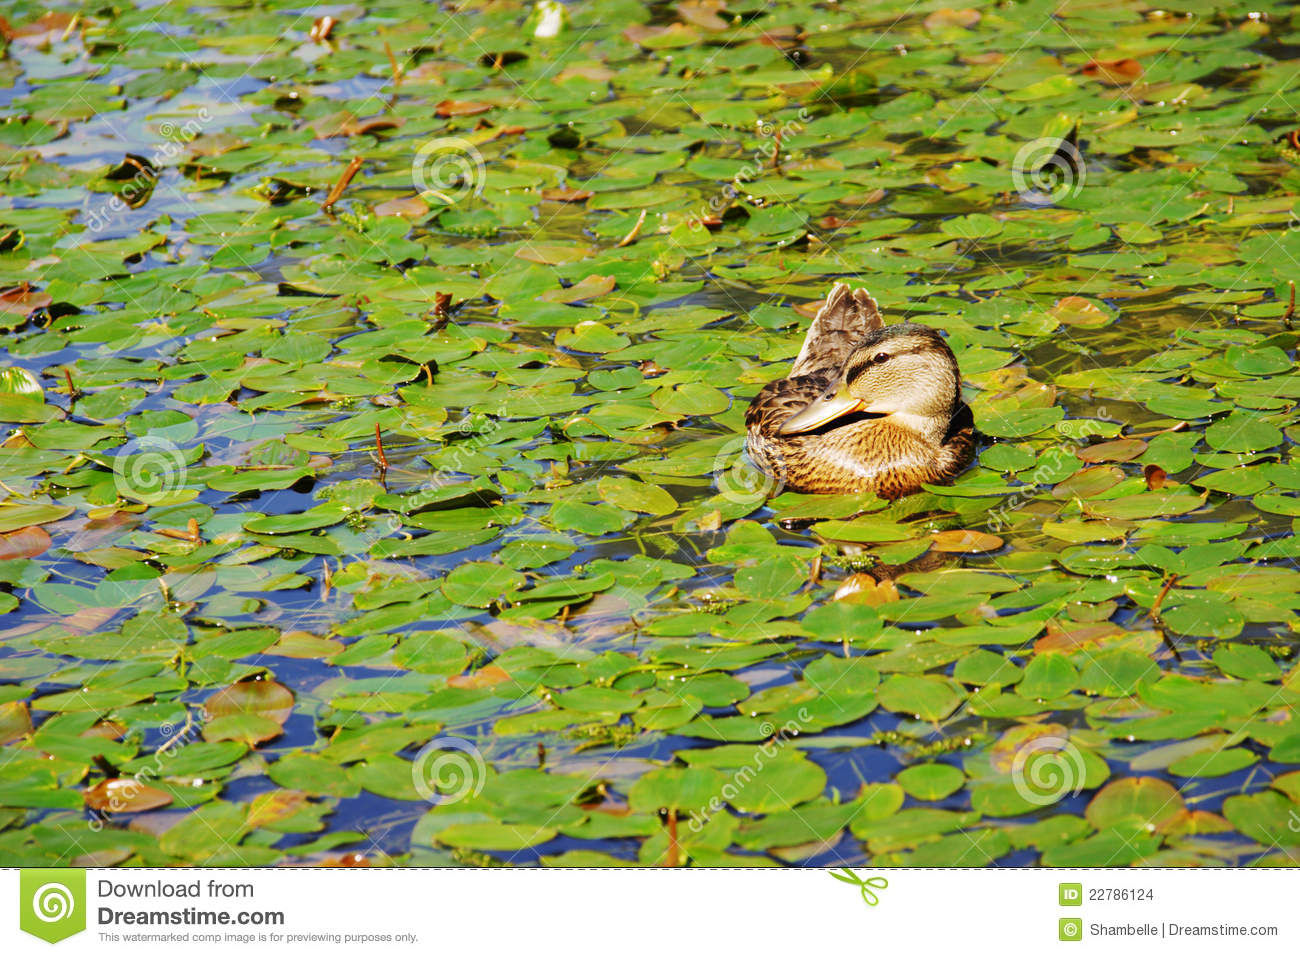 Mallard duck on a pond surrounded by water lilies stock for Duck pond water